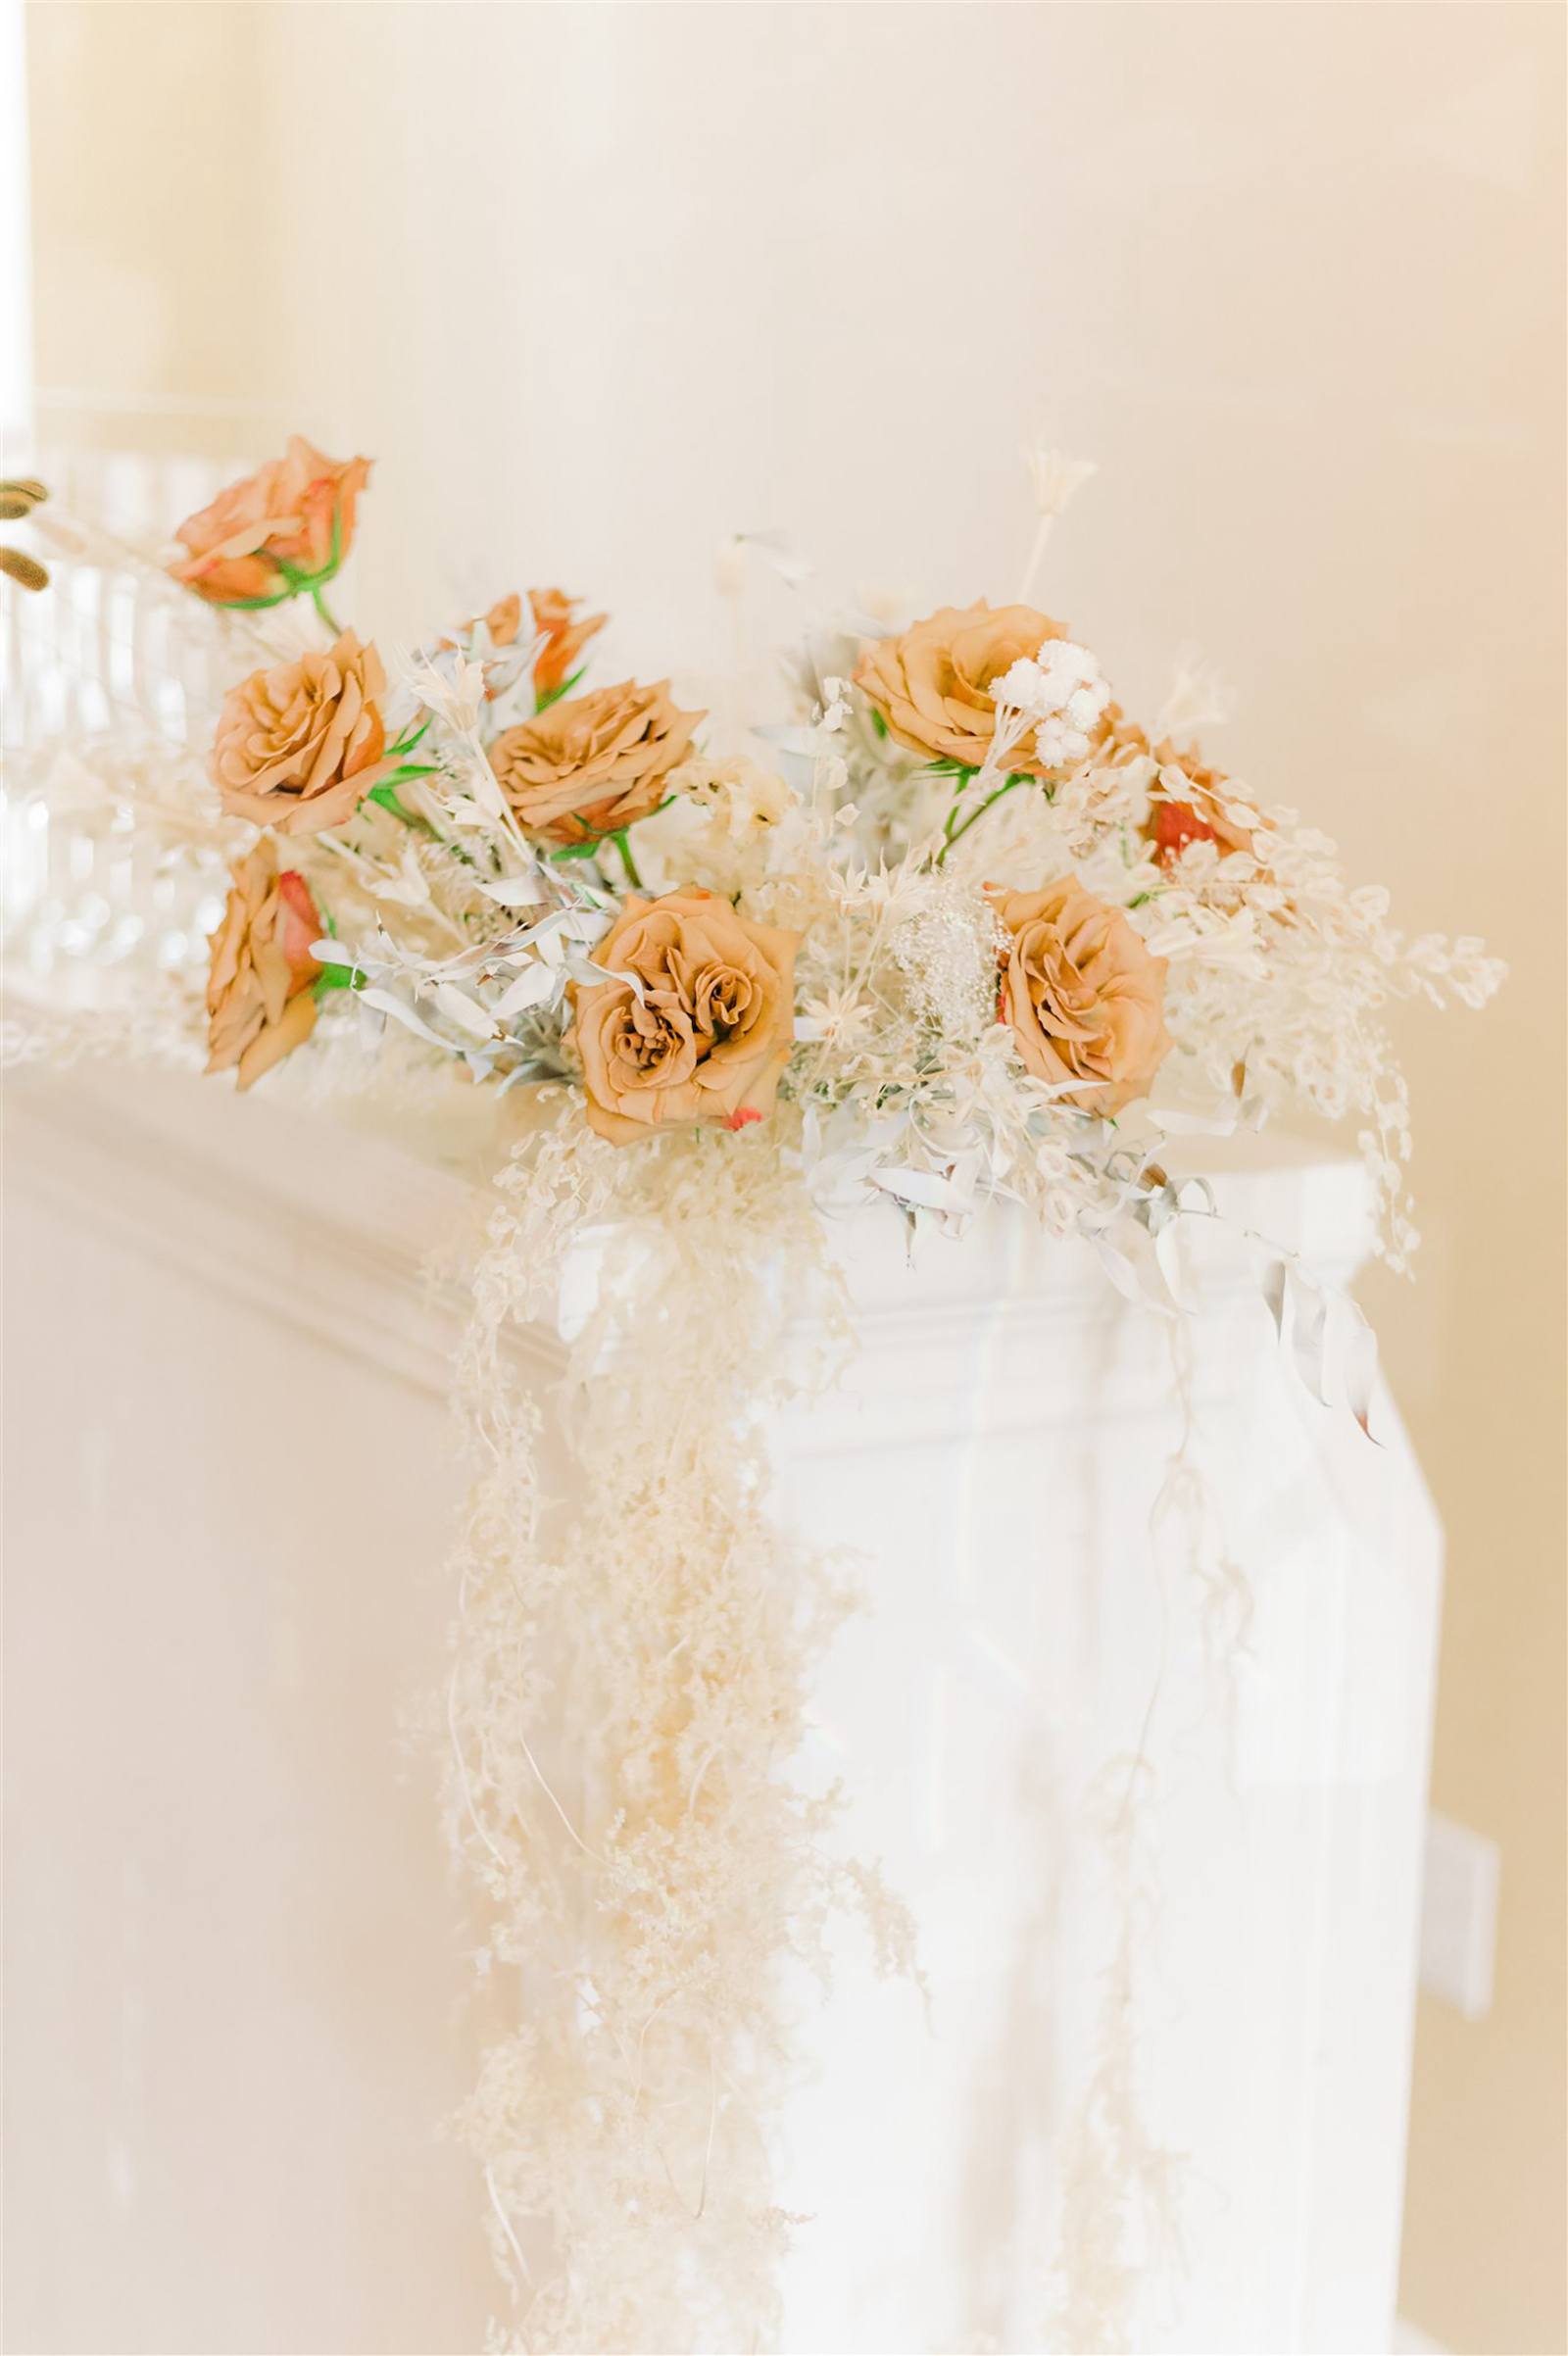 Modern and Boho Chic Wedding Reception Decor, Dried White Floral and Foliage with Beige Roses Bouquet on White Bar | Tampa Bay Wedding Planner, Designer, Florals John Campbell Weddings | Bar Service Spunky Spirits